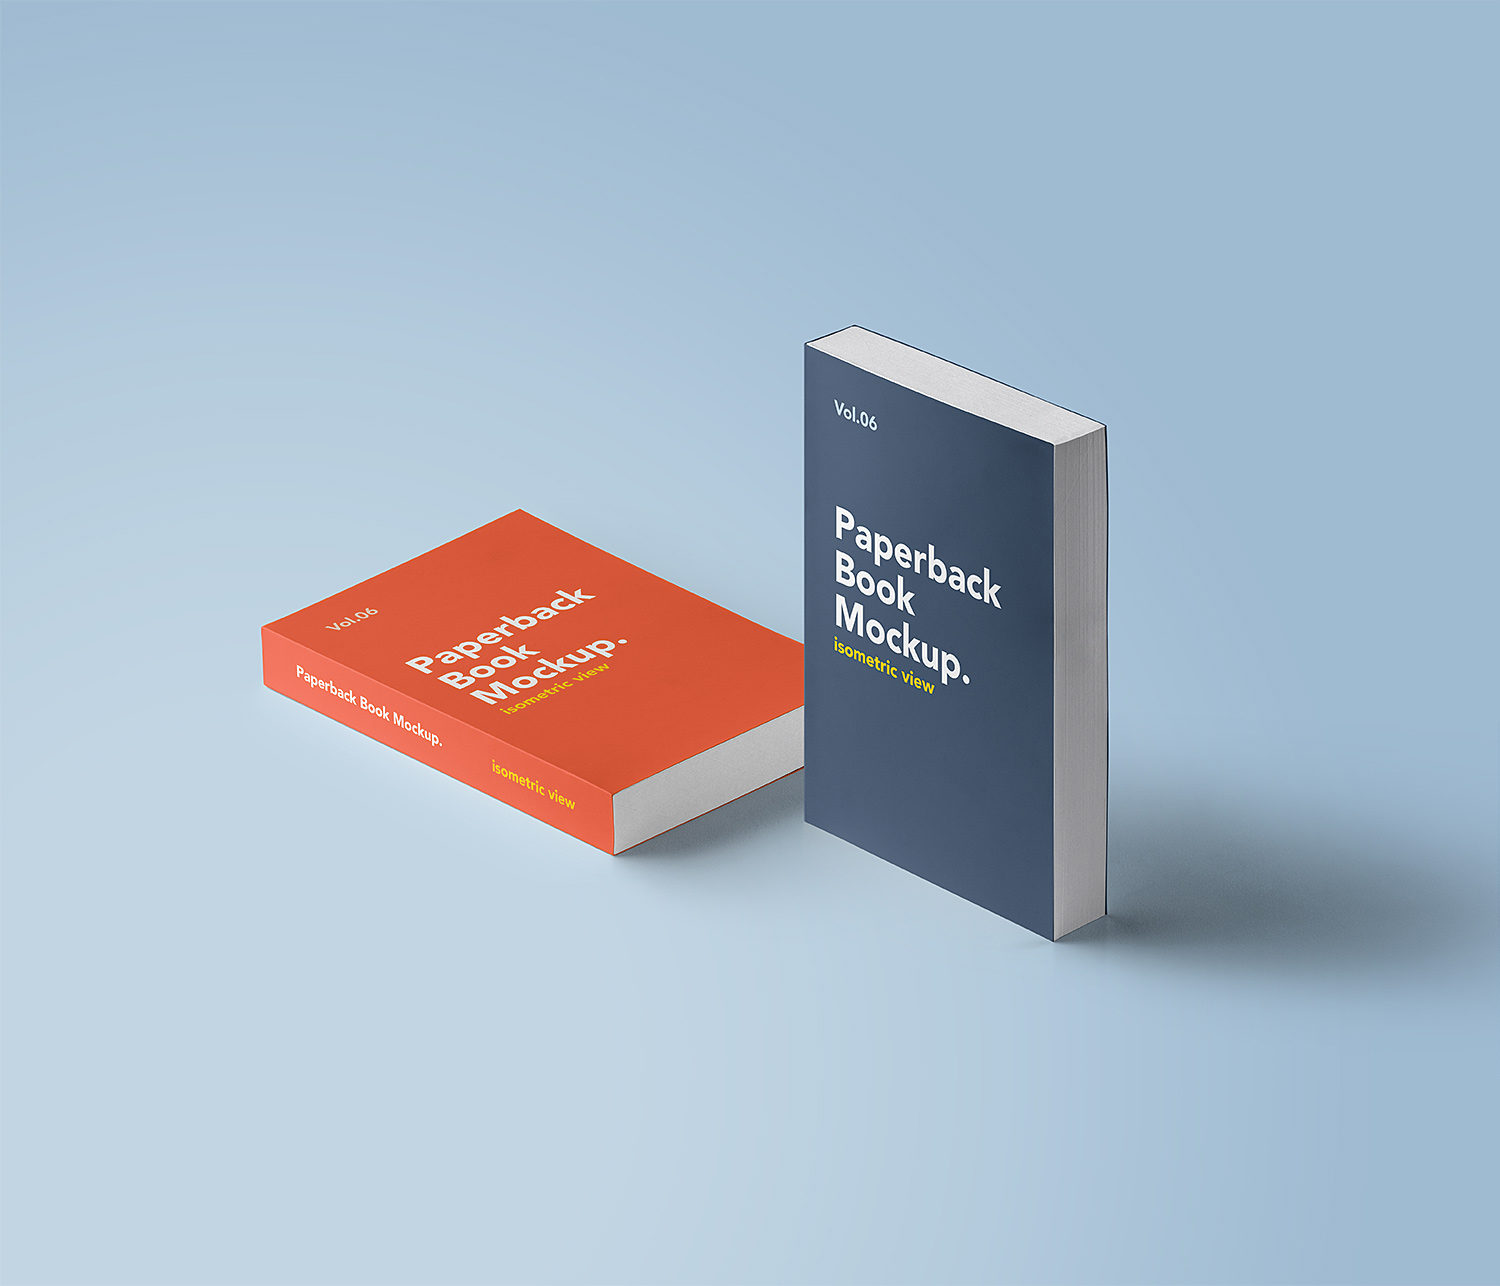 Cover Book Mockup Free